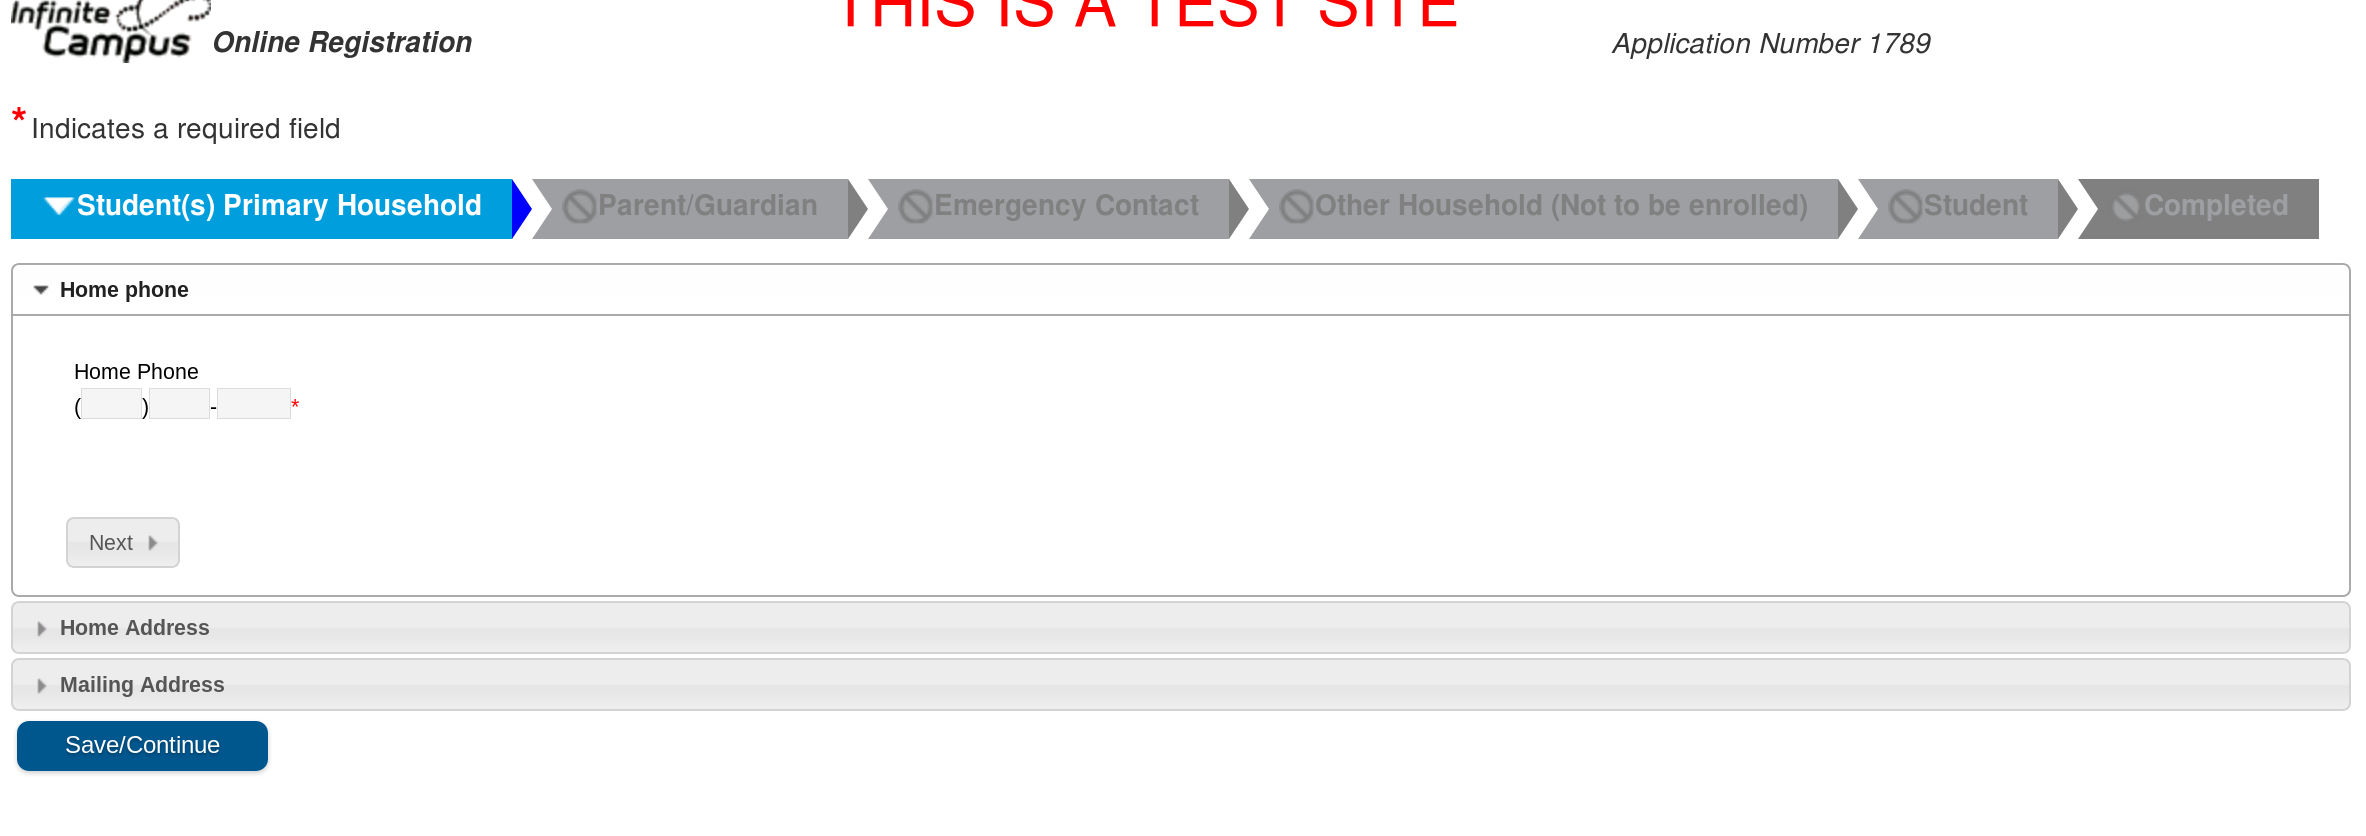 Main Online Registration Window